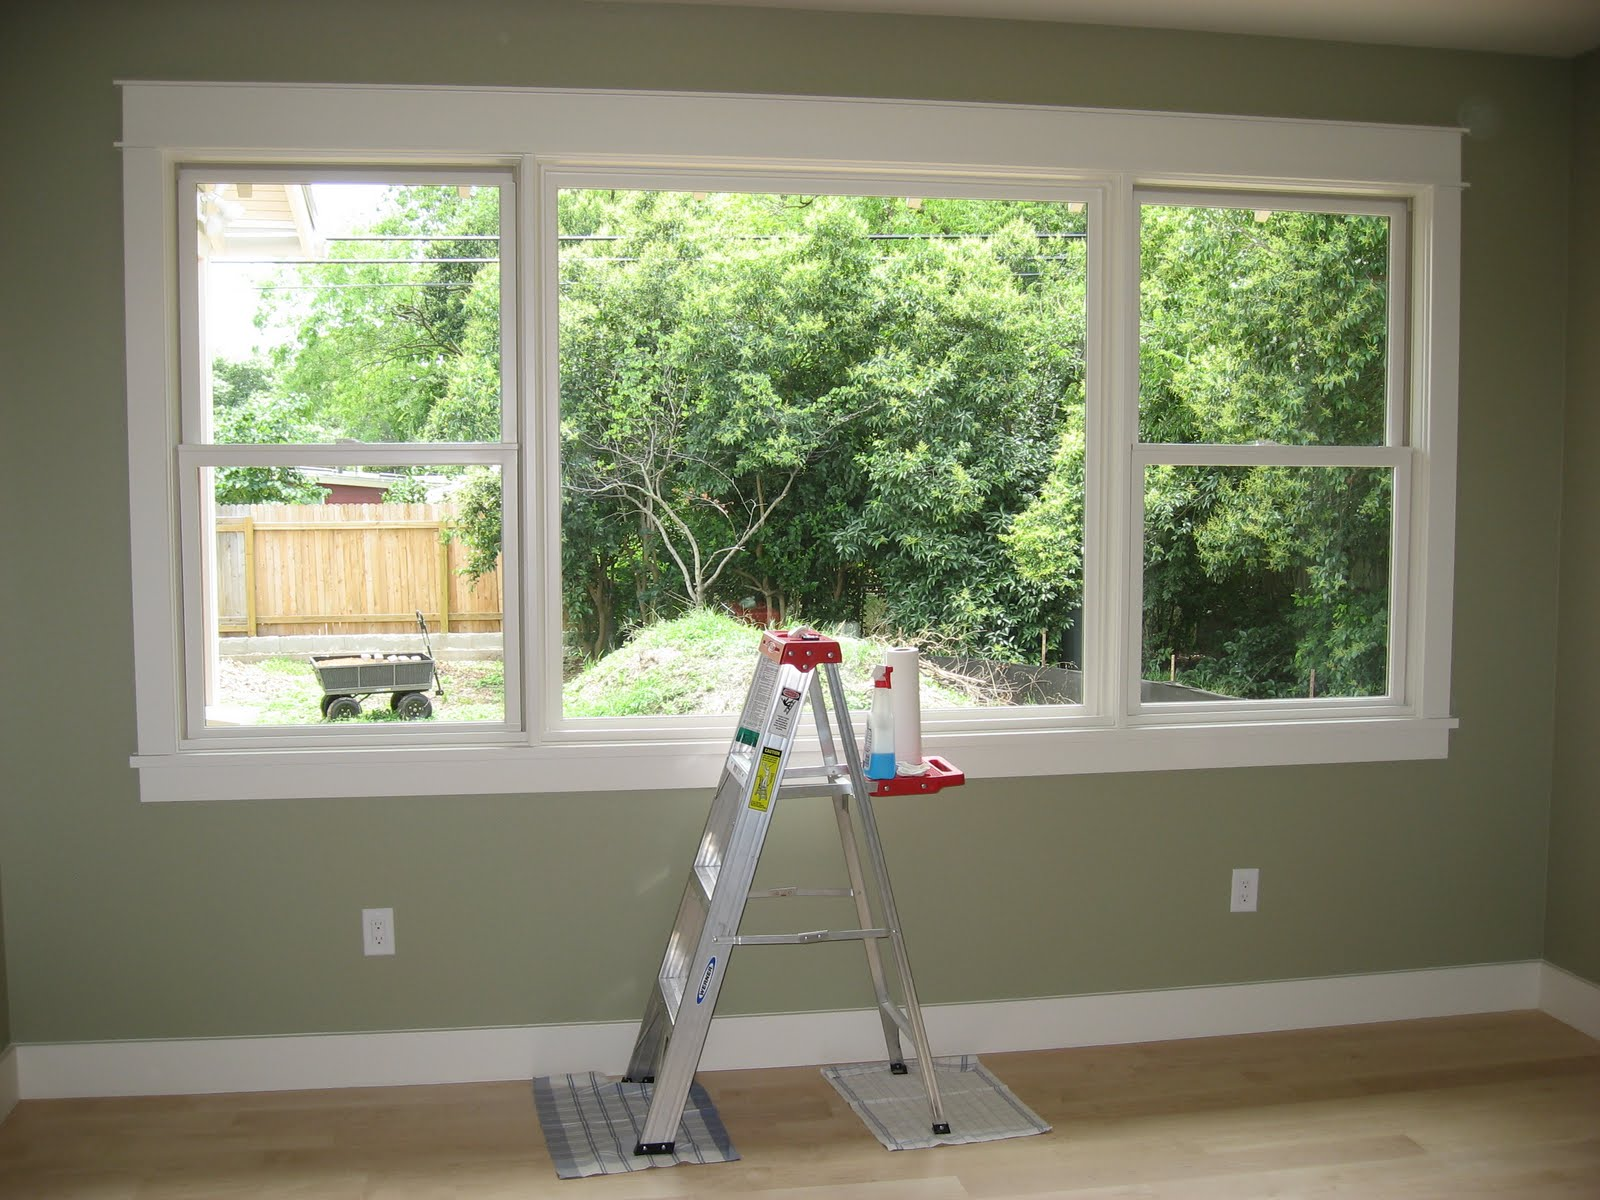 Simple window trim - On The Other Hand I Can T See So Clearly In The Master Bathroom Where Another Inspection Issue Meant That We Had To Put Up A Shower Curtain Across The